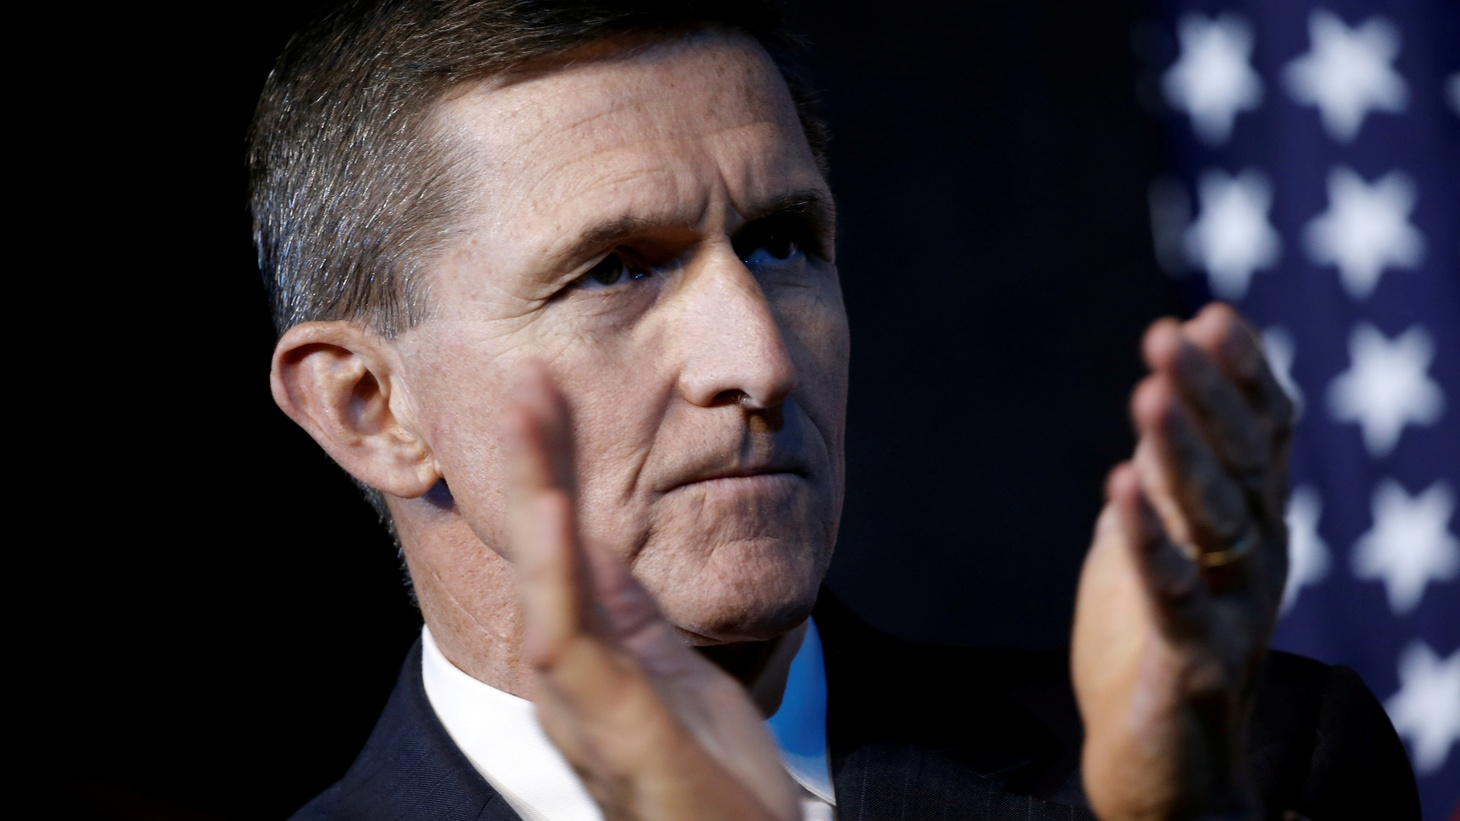 Retired U.S. Army Lieutenant General Michael Flynn reacts at a campaign event for then Republican presidential nominee Donald Trump in Herndon, Virginia, U.S., October 3, 2016.